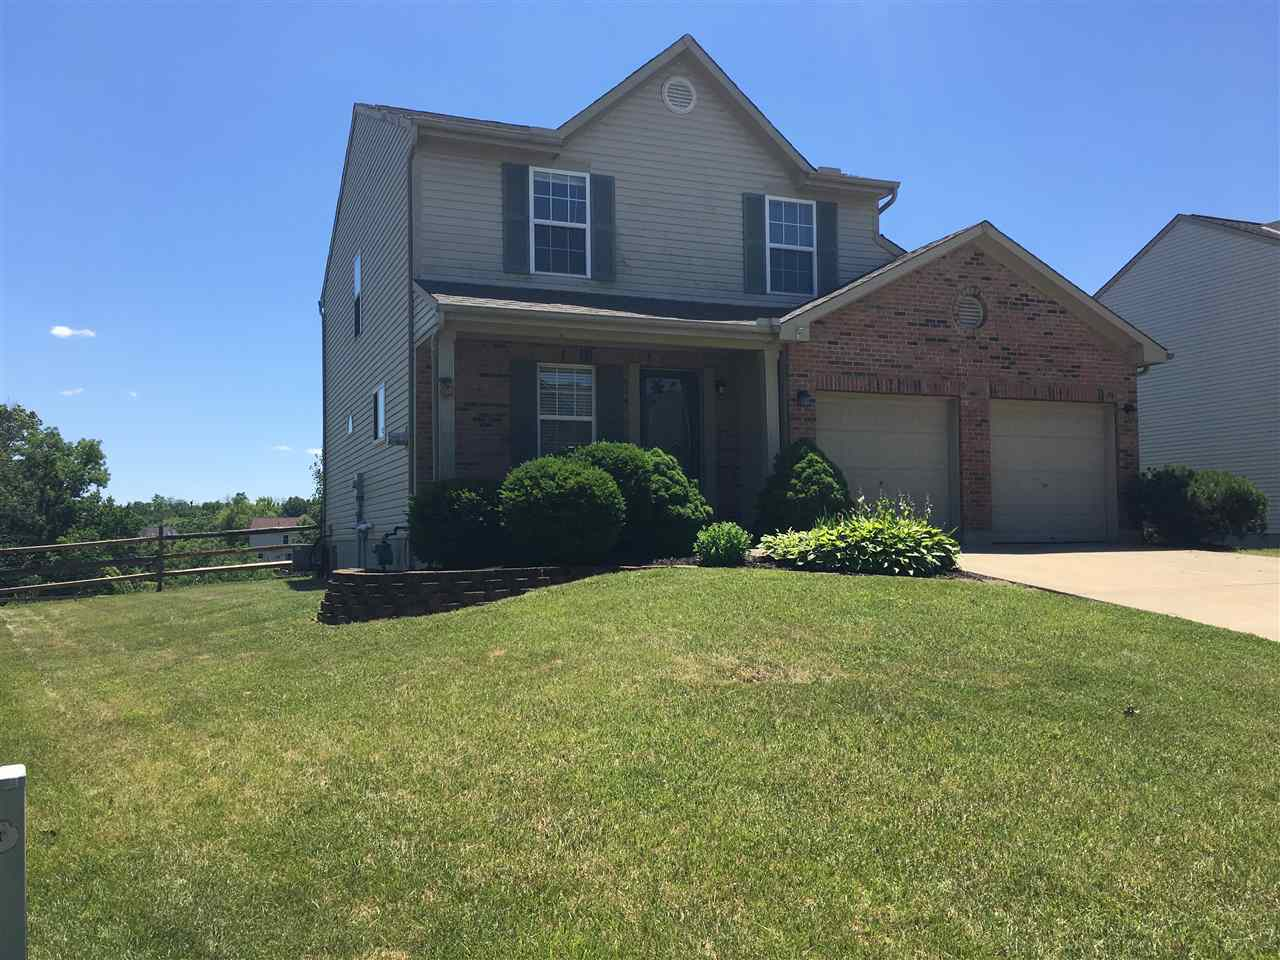 Photo 1 for 4949 Moonlight Way Independence, KY 41051